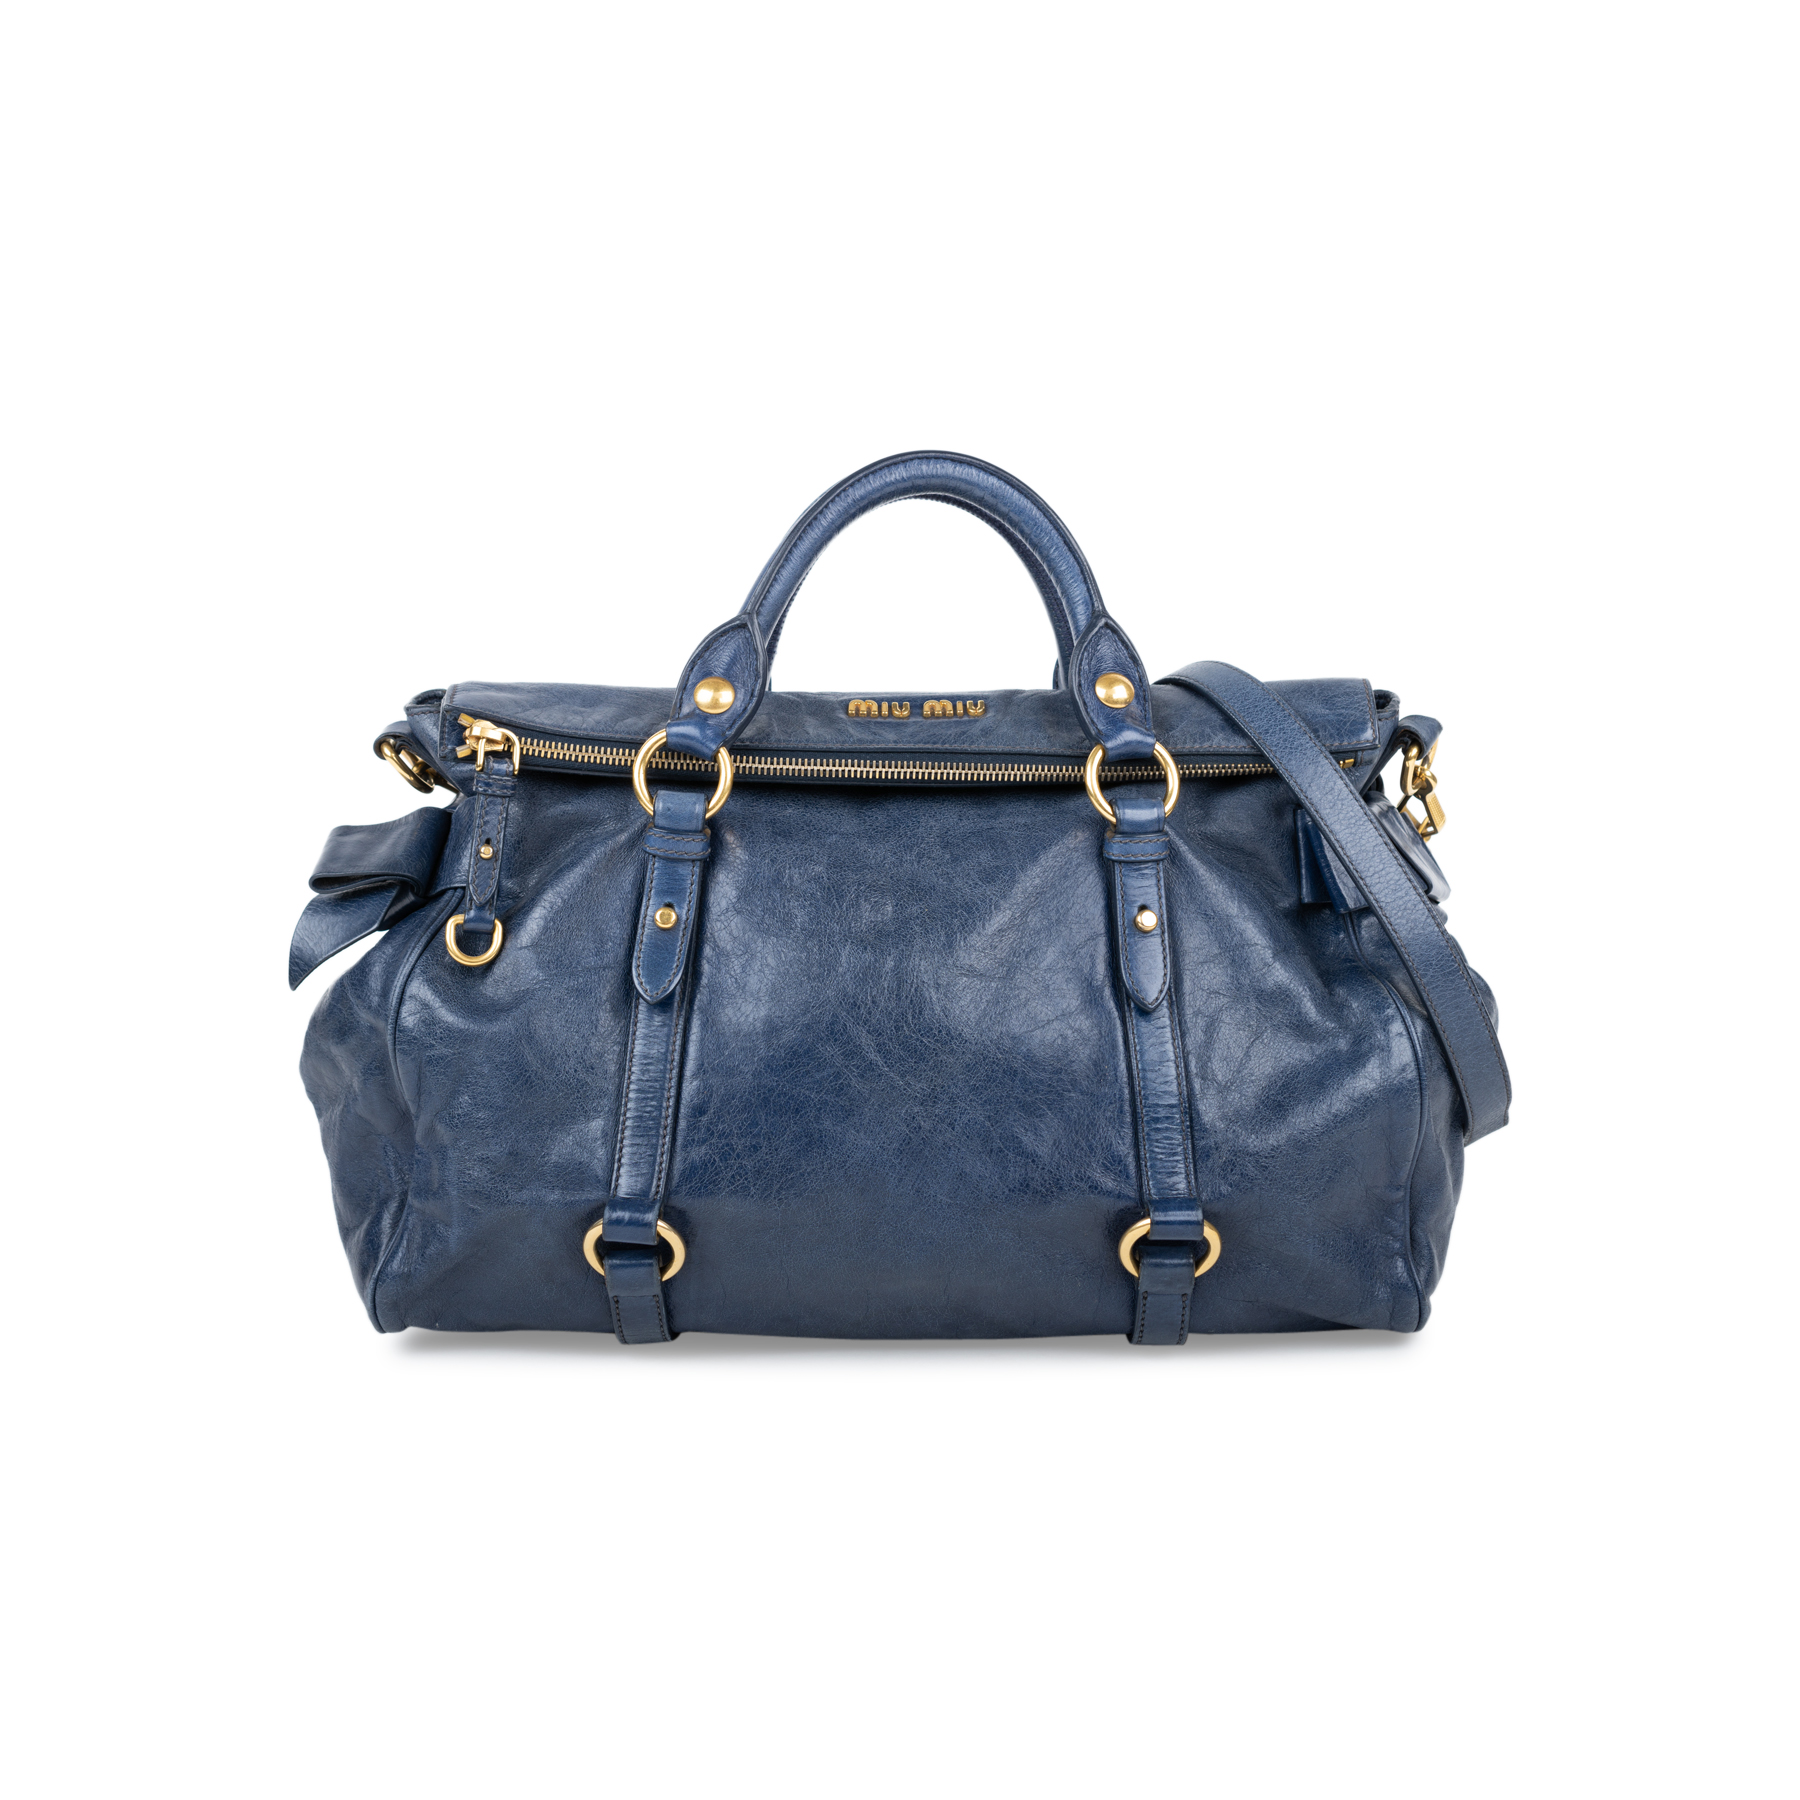 11389462edc9 Authentic Second Hand Miu Miu Vitello Lux Bow Bag (PSS-566-00066 ...